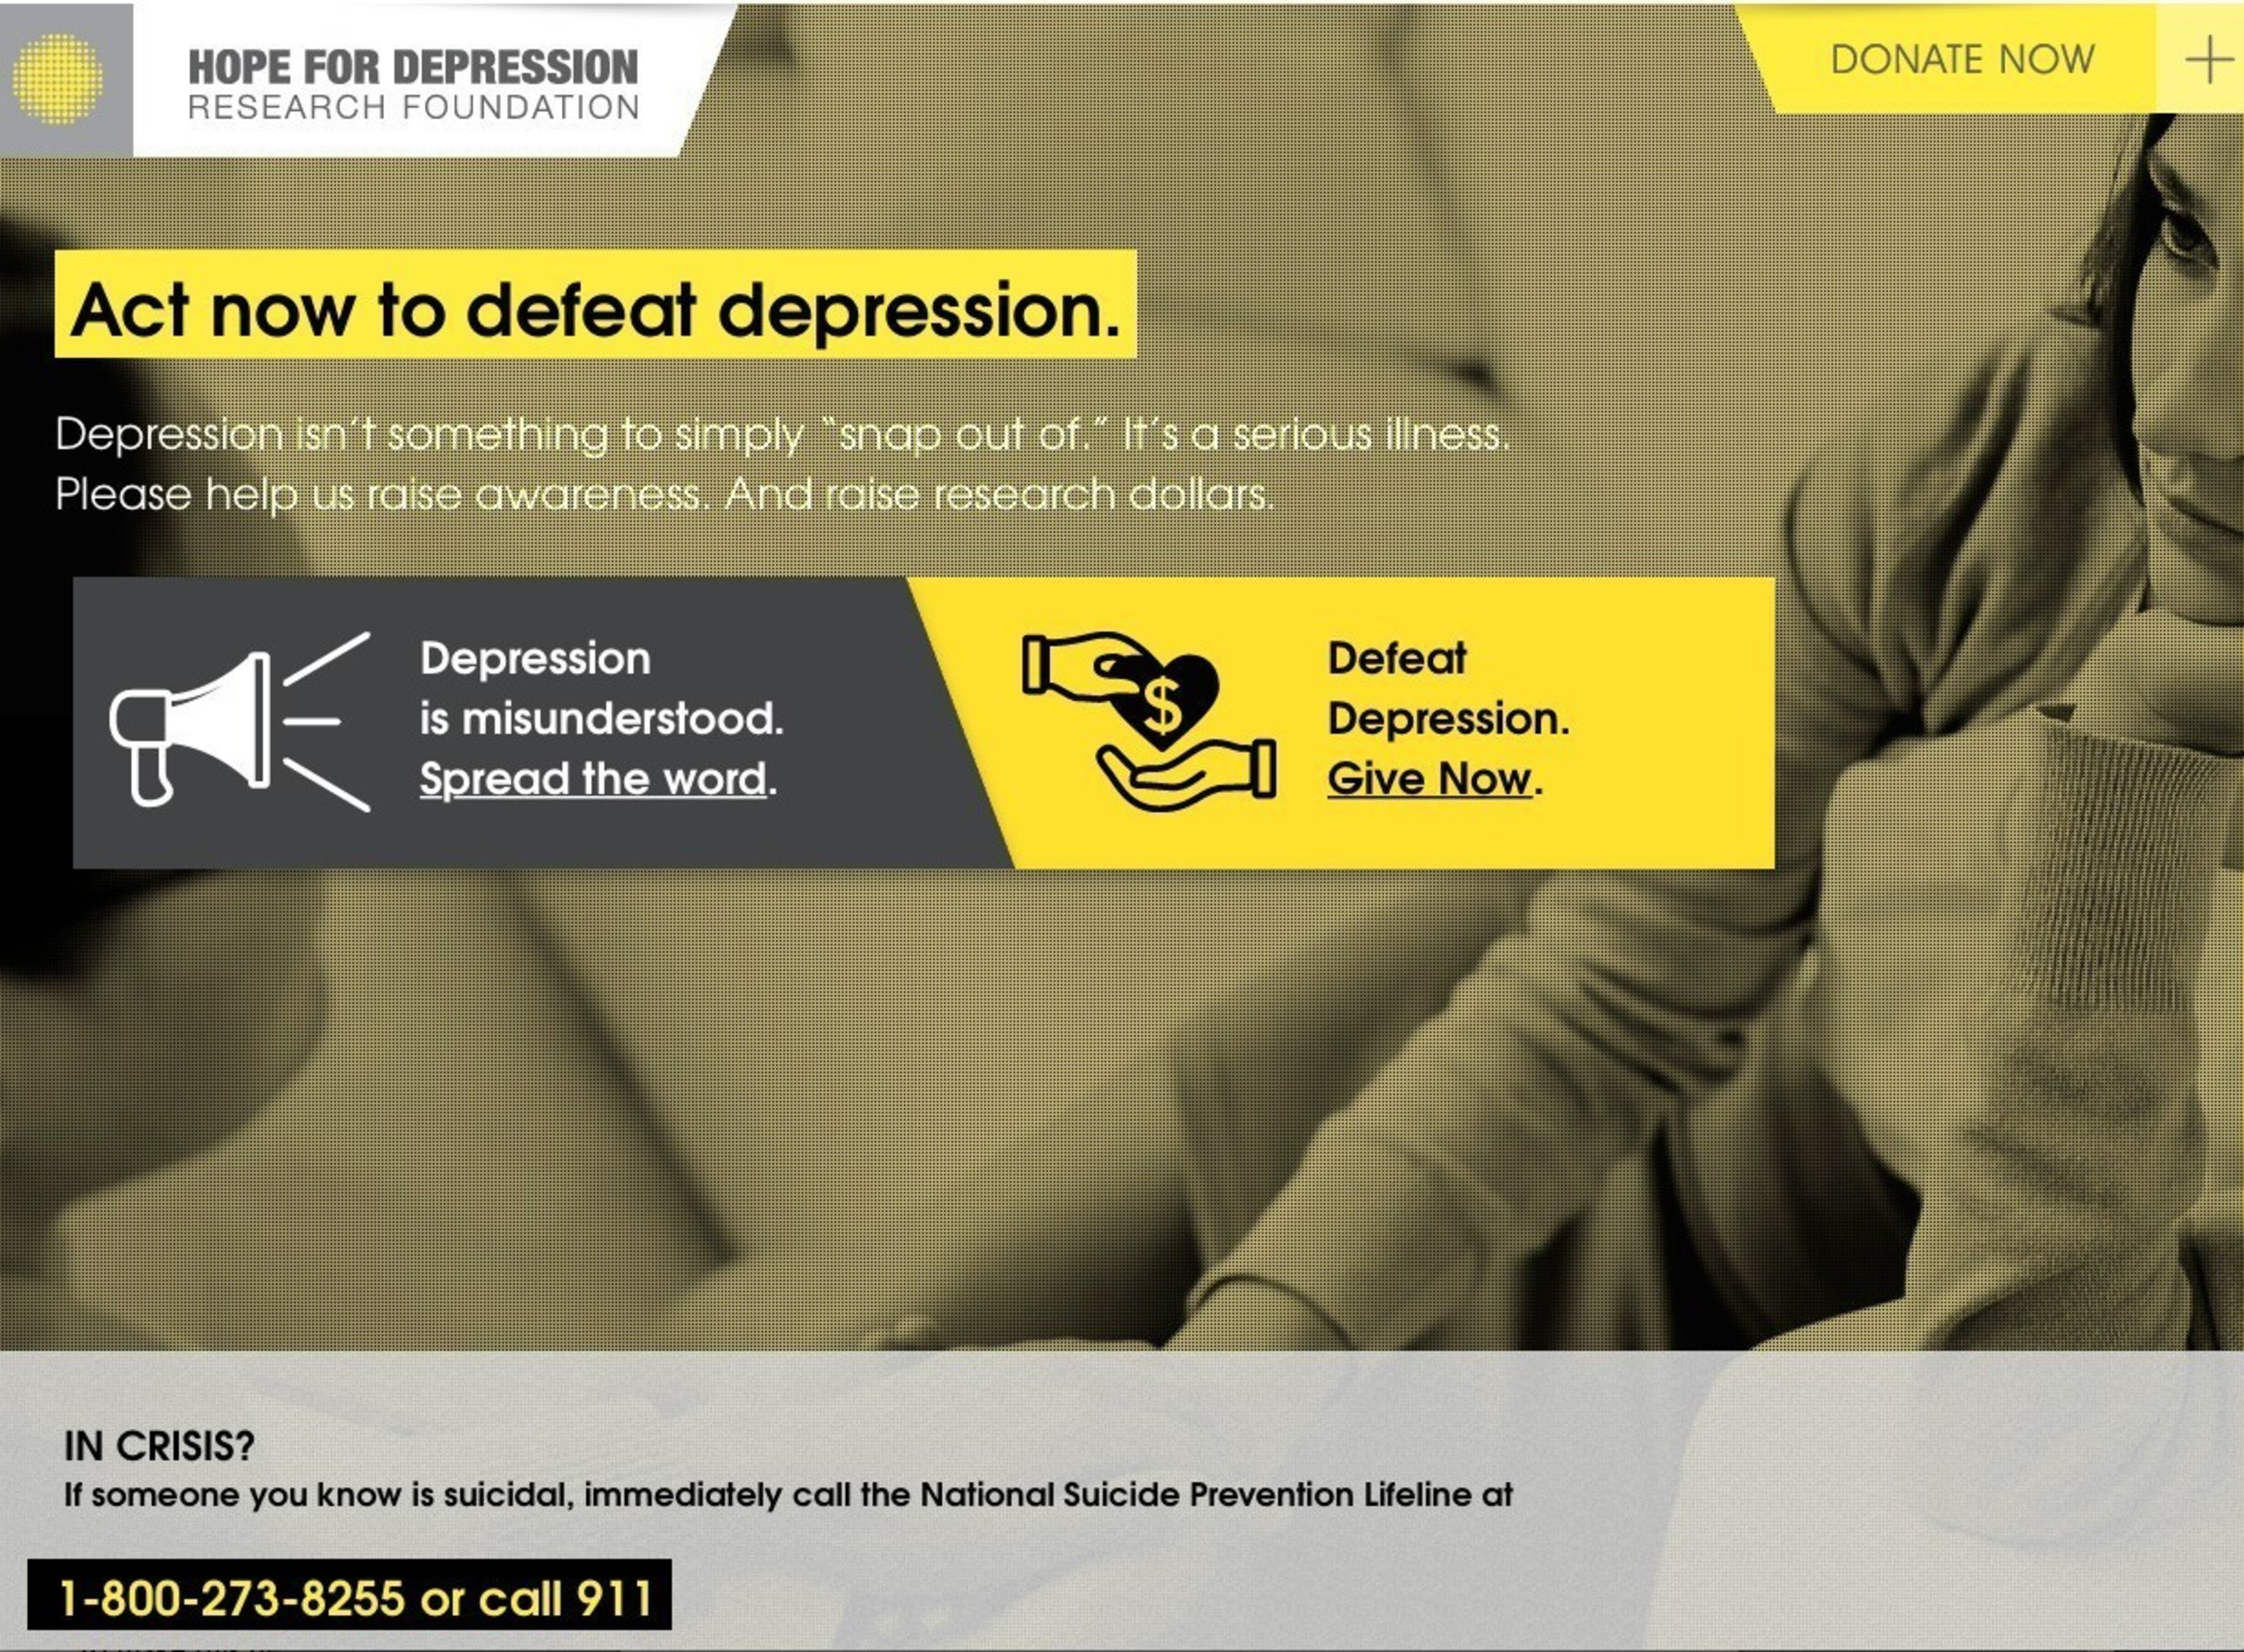 Hope For Depression Research Foundation Launches New PSA, Created By McCann HumanCare, At Fundraising Luncheon Honoring Mariel Hemingway & Demi Lovato